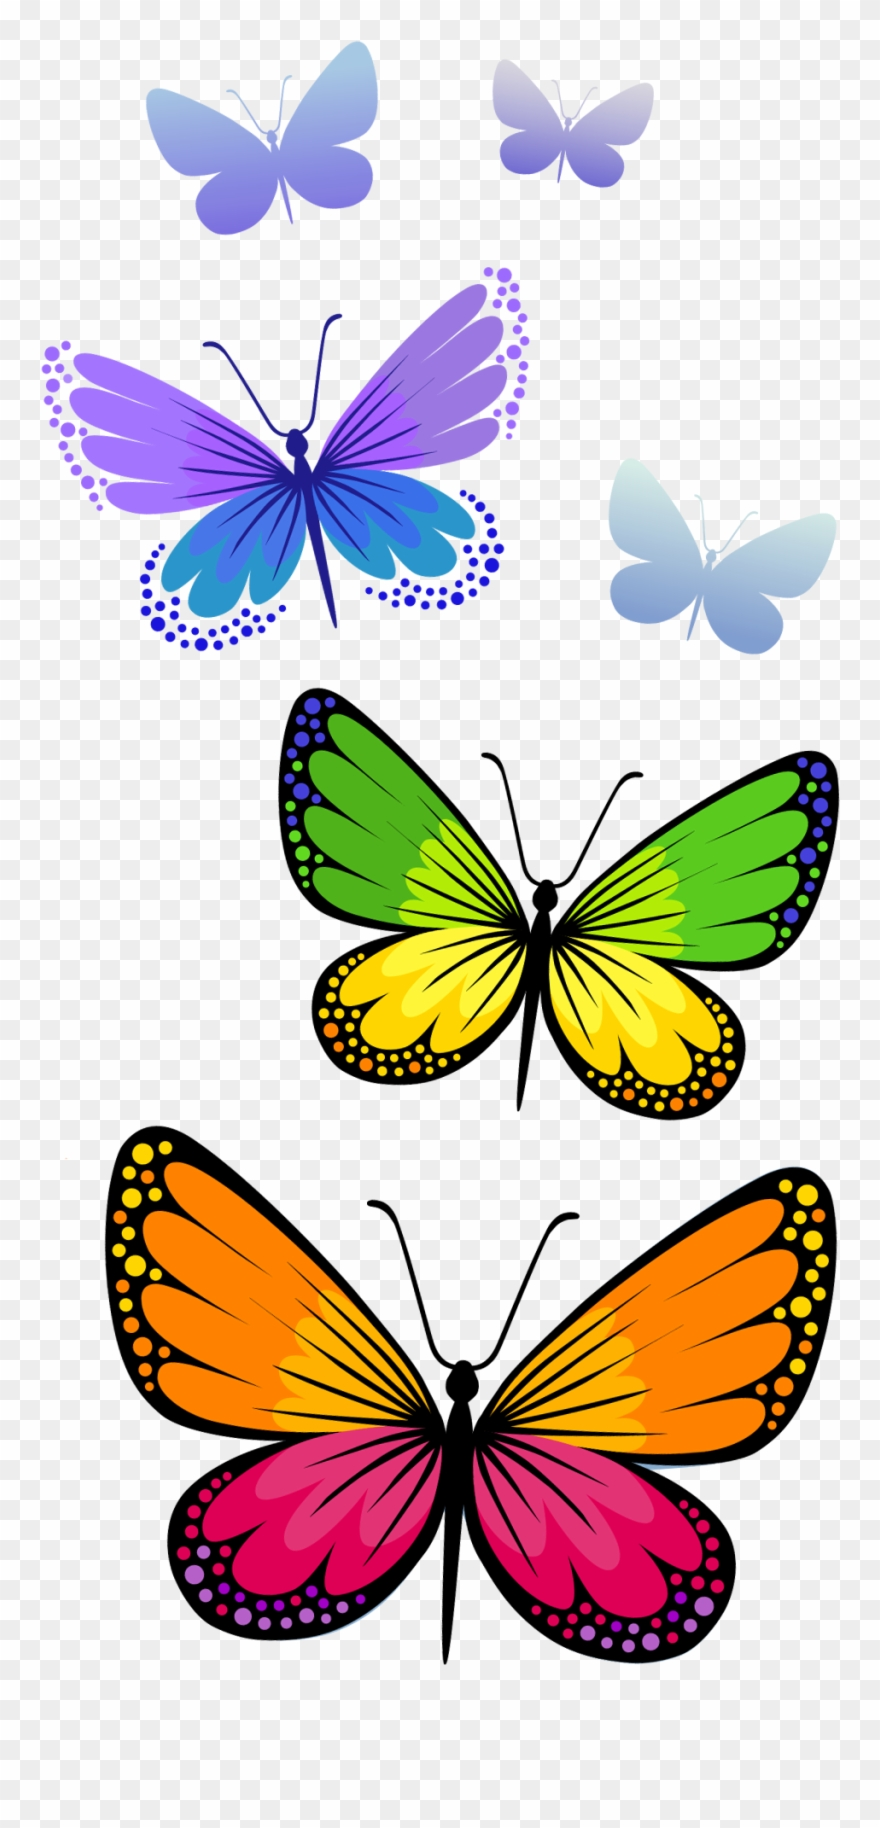 medium resolution of half butterfly cliparts free download clip art png format butterfly clipart png transparent png